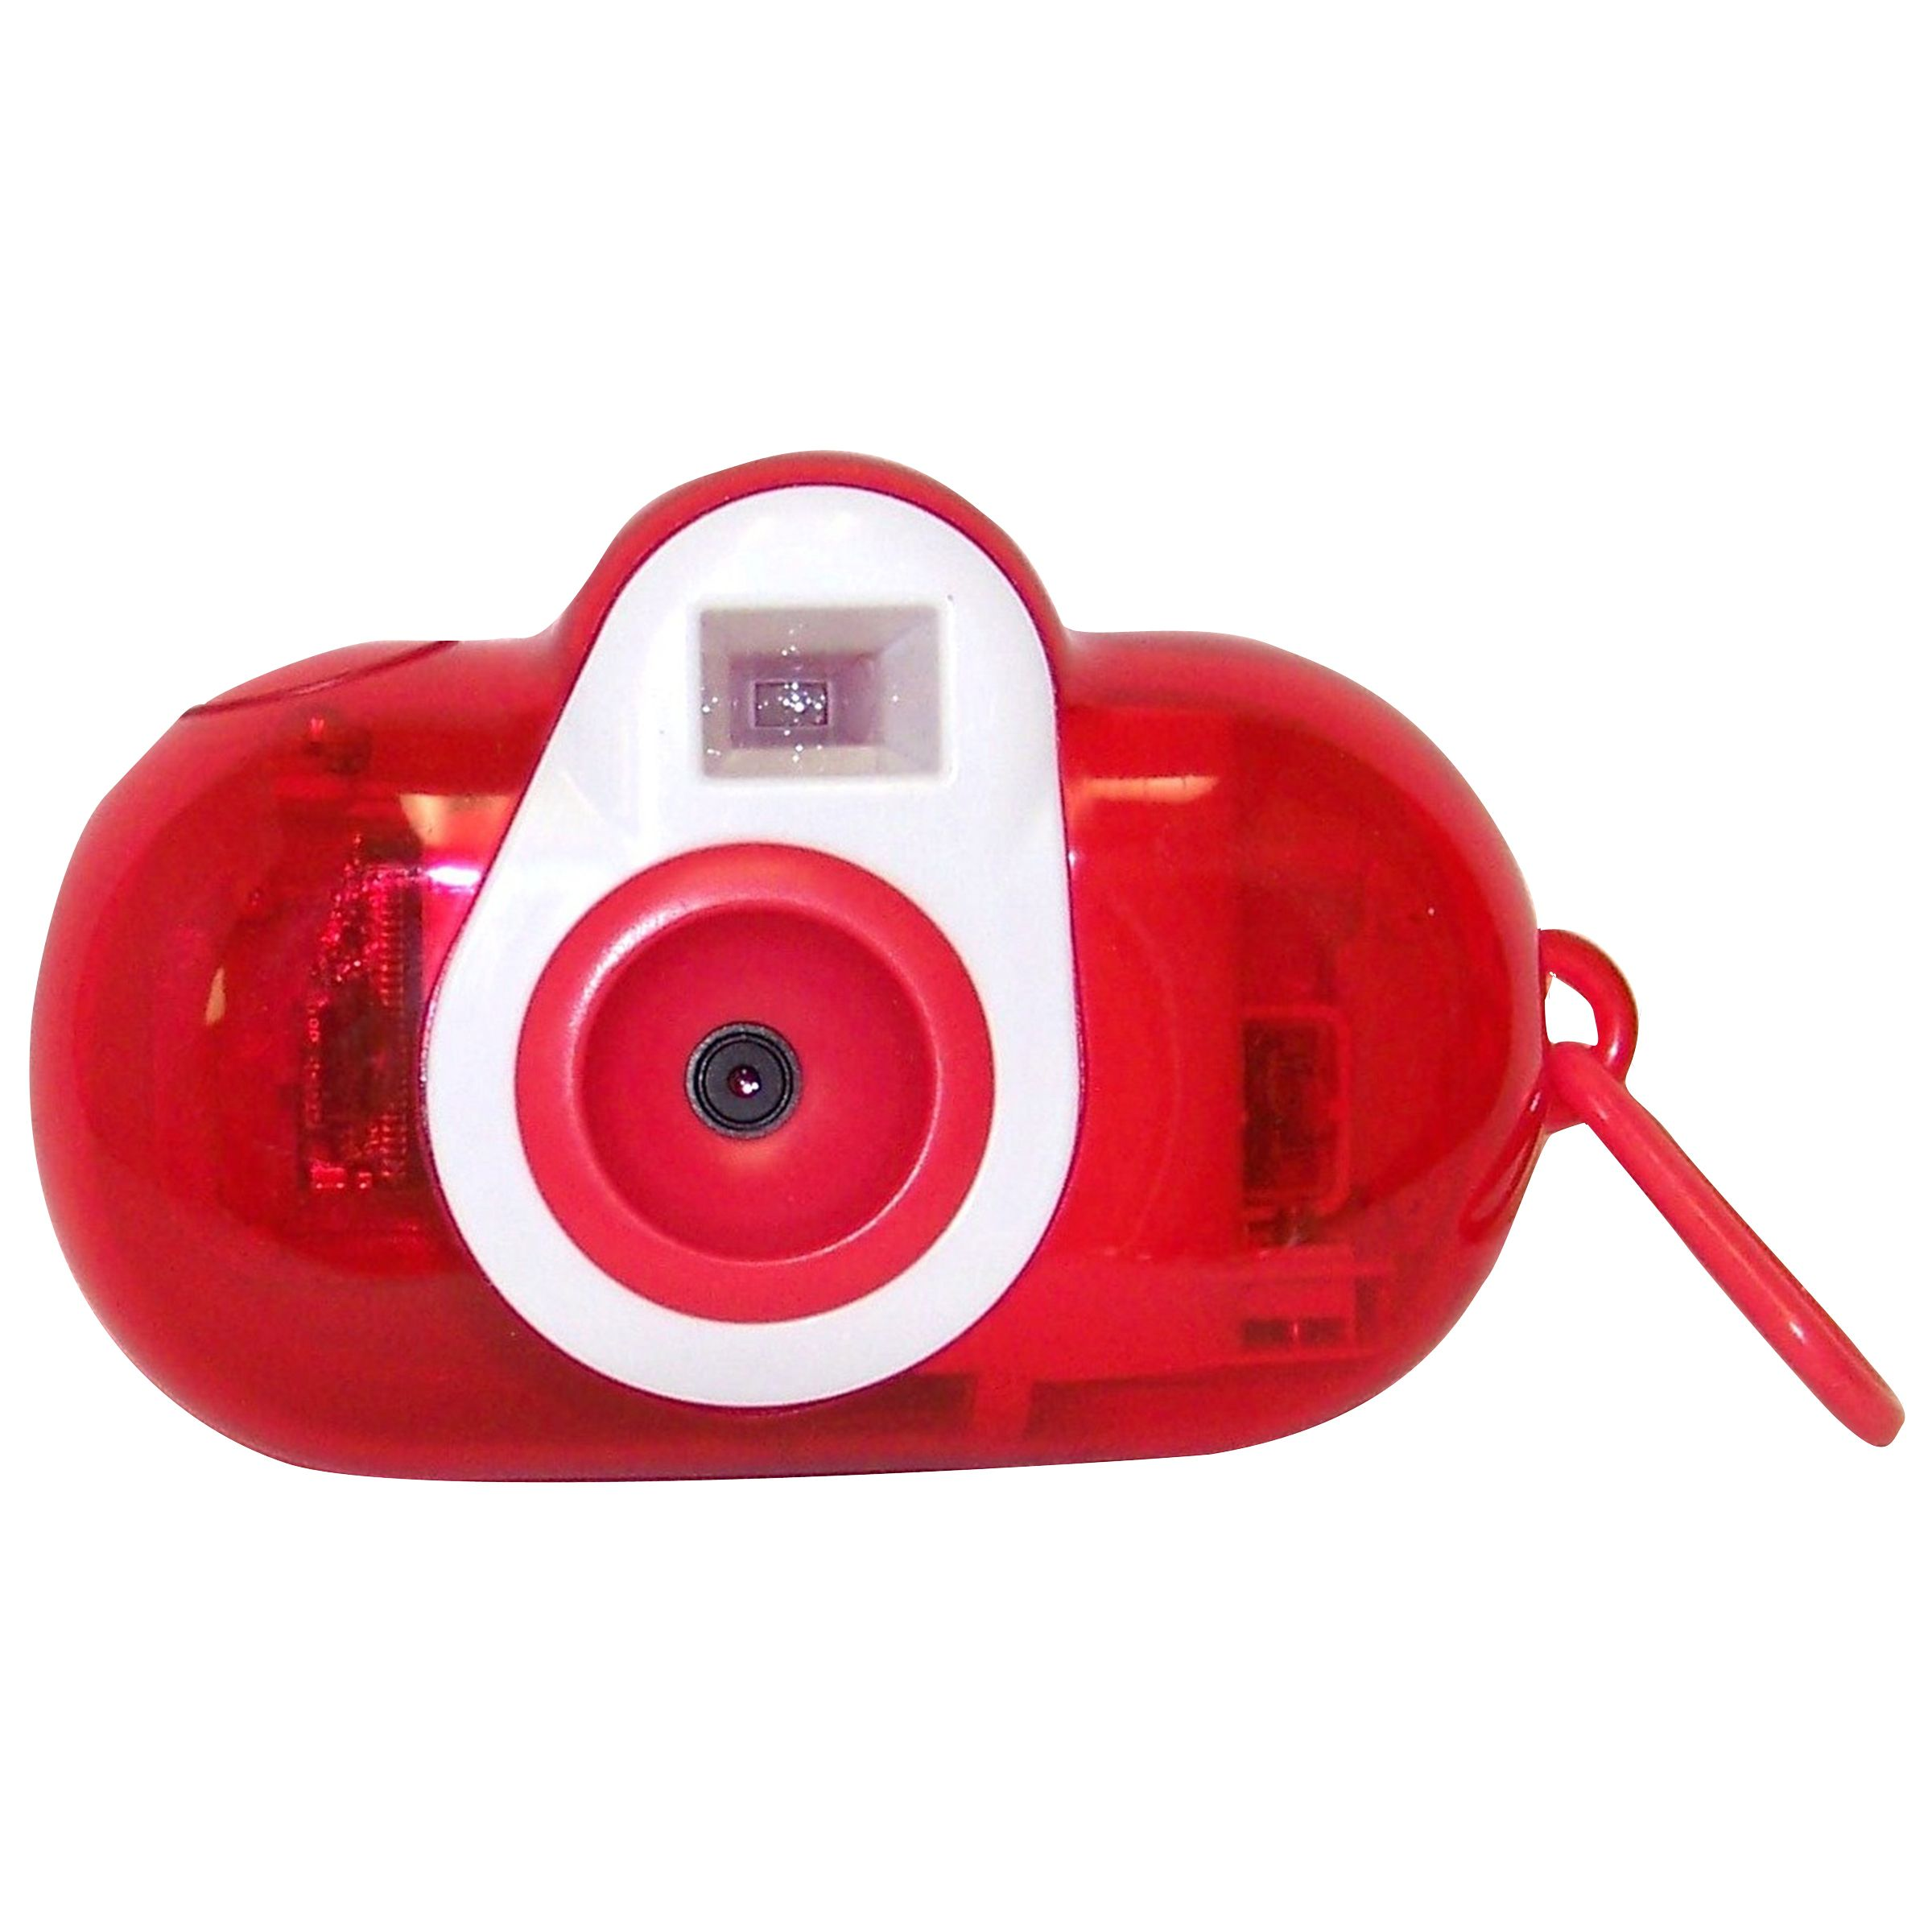 Cobra Digital 3-In-1 Squeeze DC150-B Digital Camera for Kids - Red